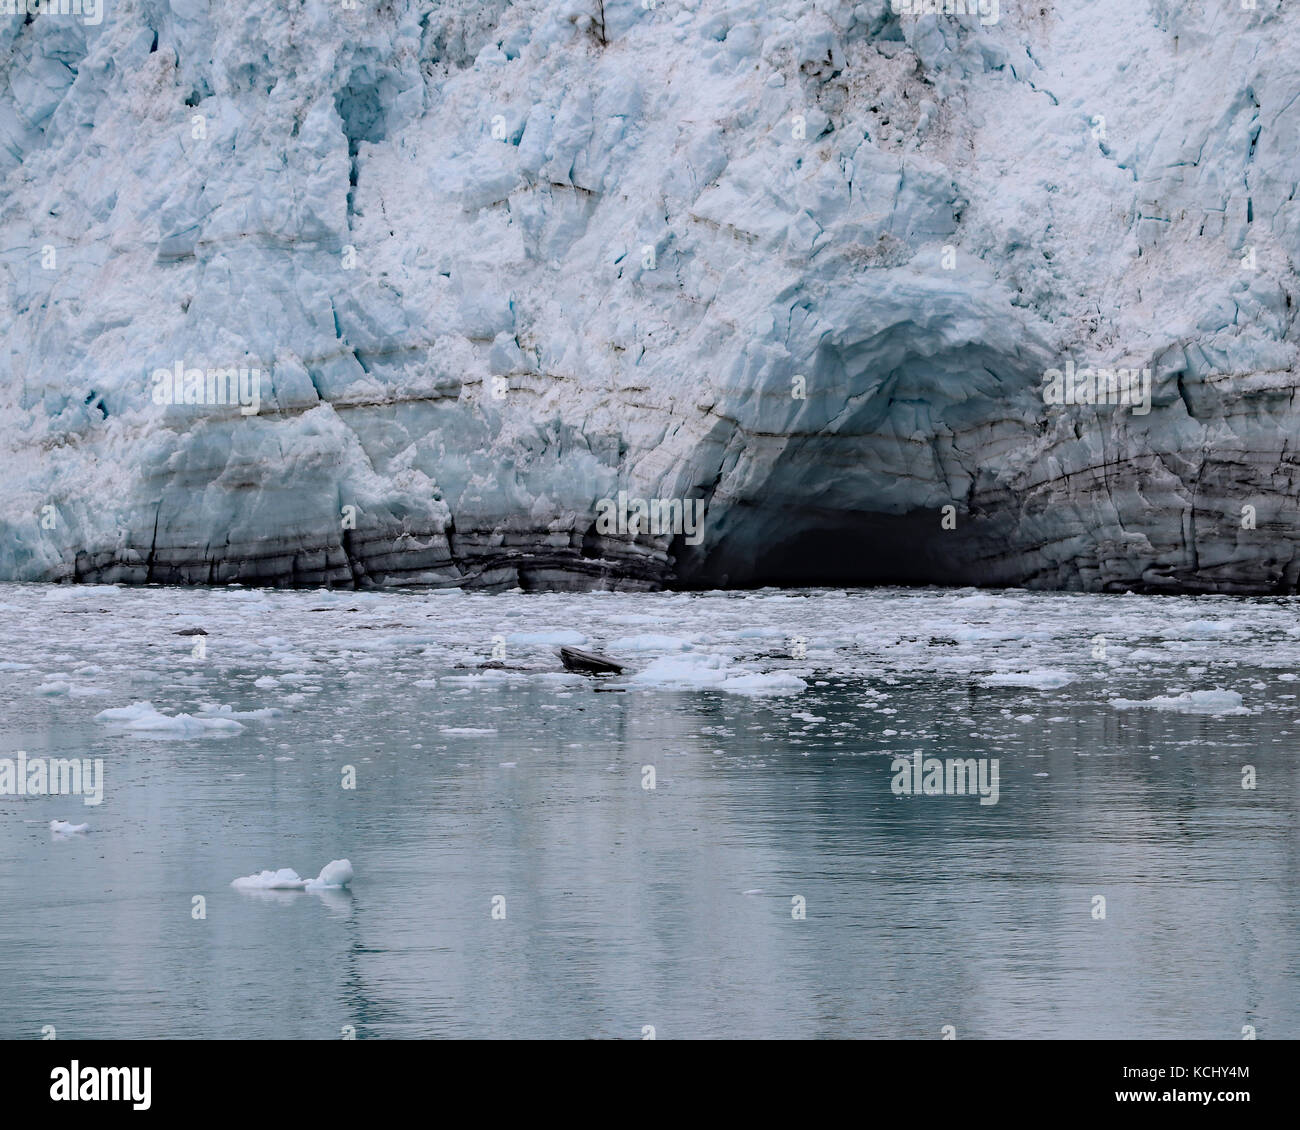 Closeup of the Margerie glacier where it enters the water and caves start to form, Tarr Inlett Alaska - Stock Image